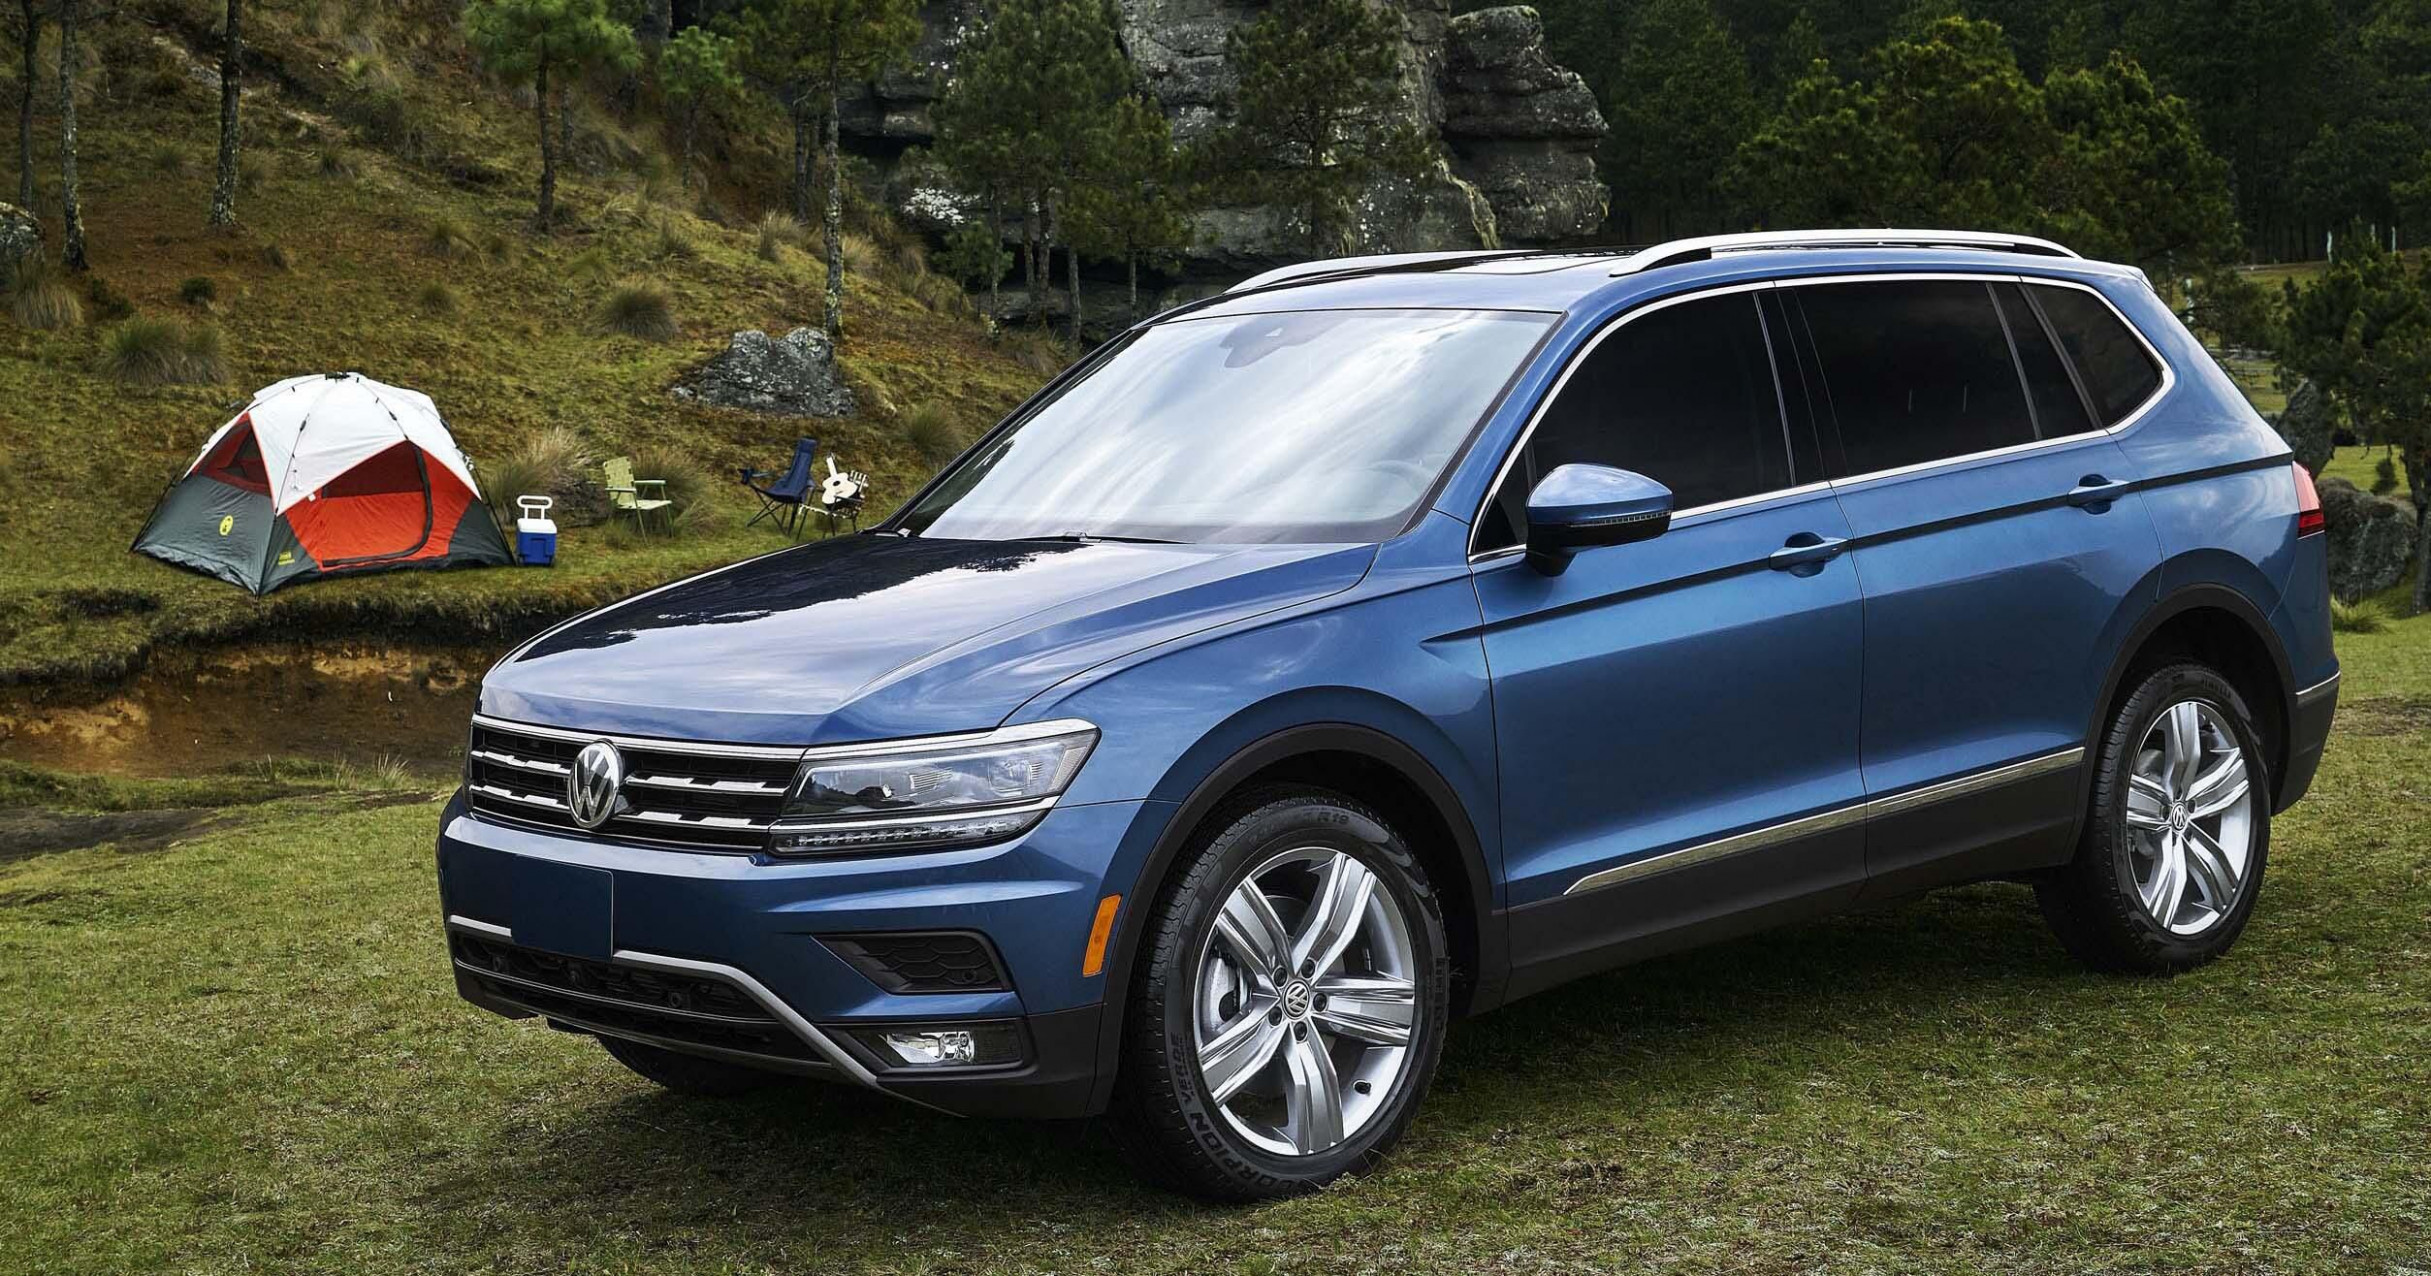 11 Volkswagen Tiguan: Model overview, pricing, tech and specs ...